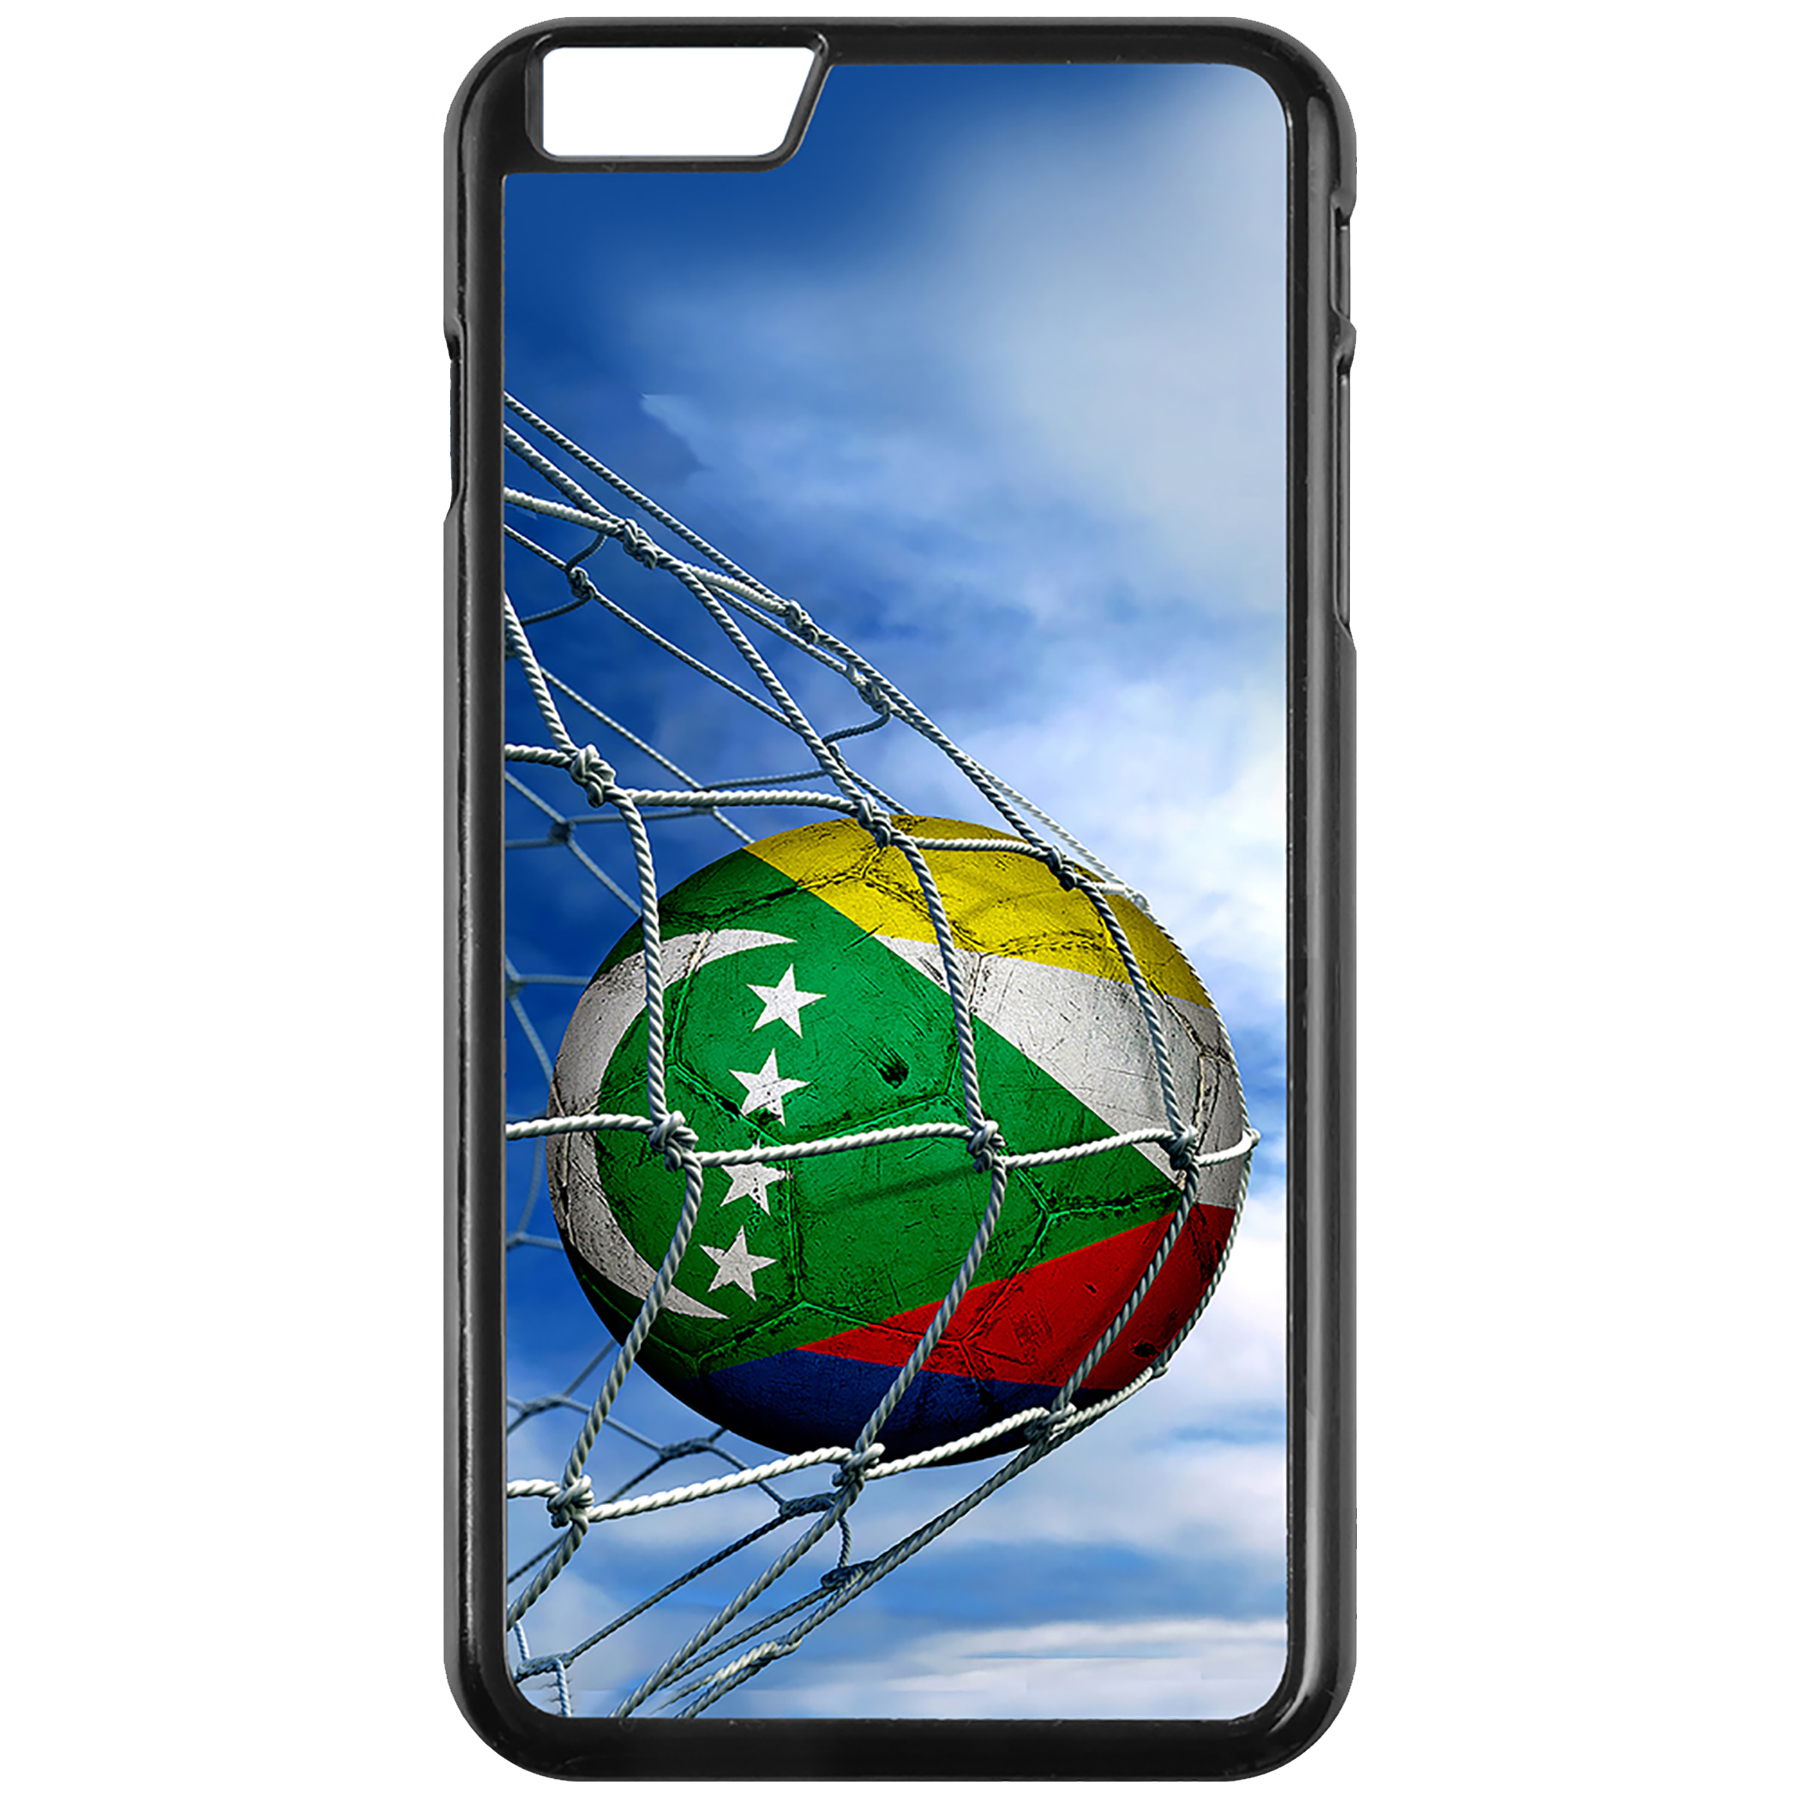 Apple-iPhone-Case-with-Flag-of-Comoros-Comorian-Many-Design-Options thumbnail 94